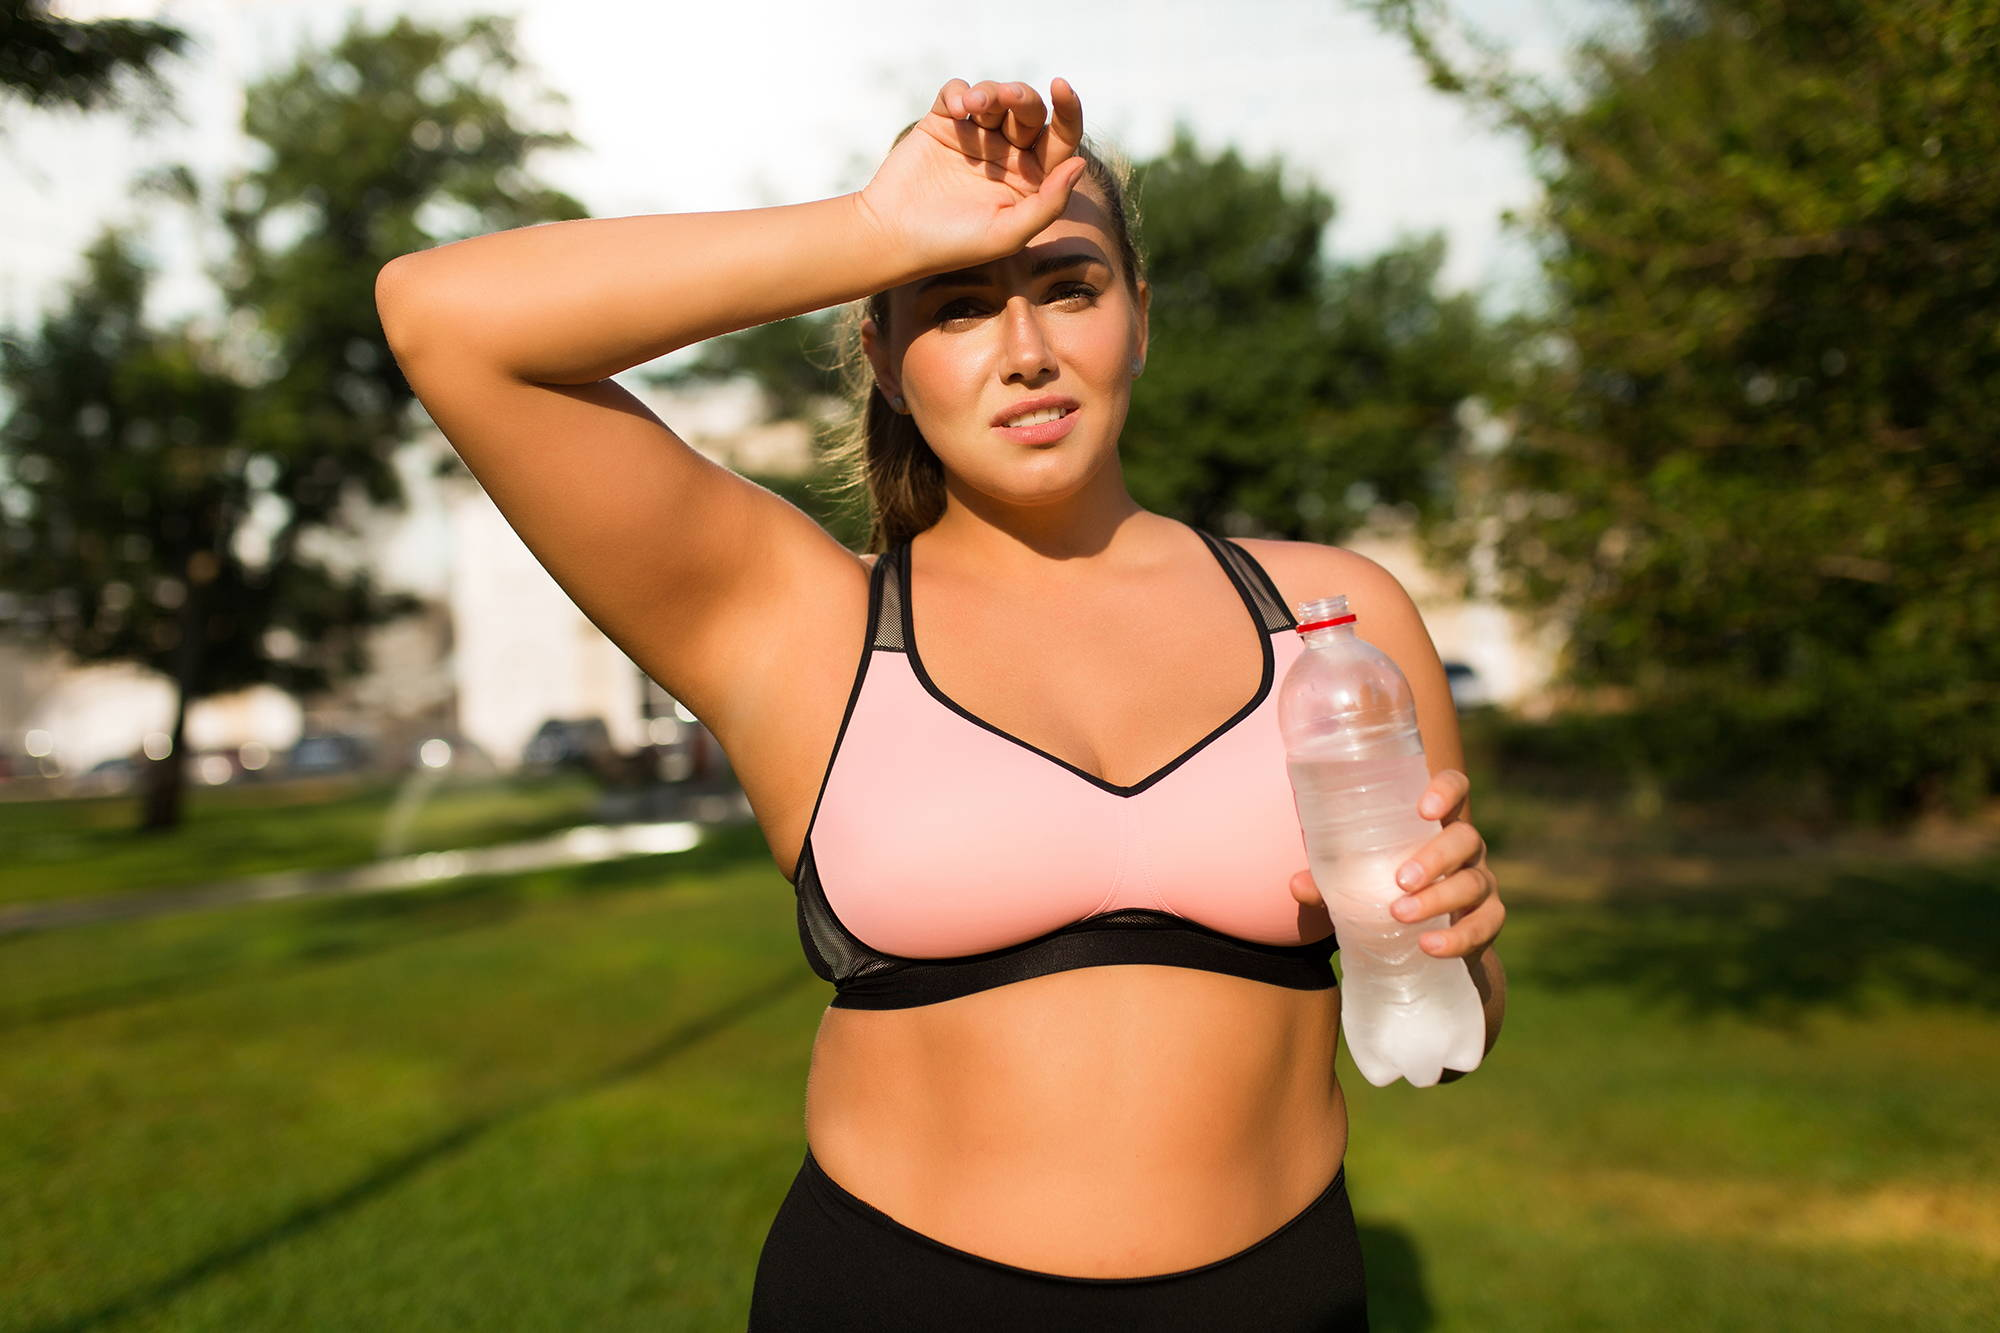 Woman in park exercising with water bottle